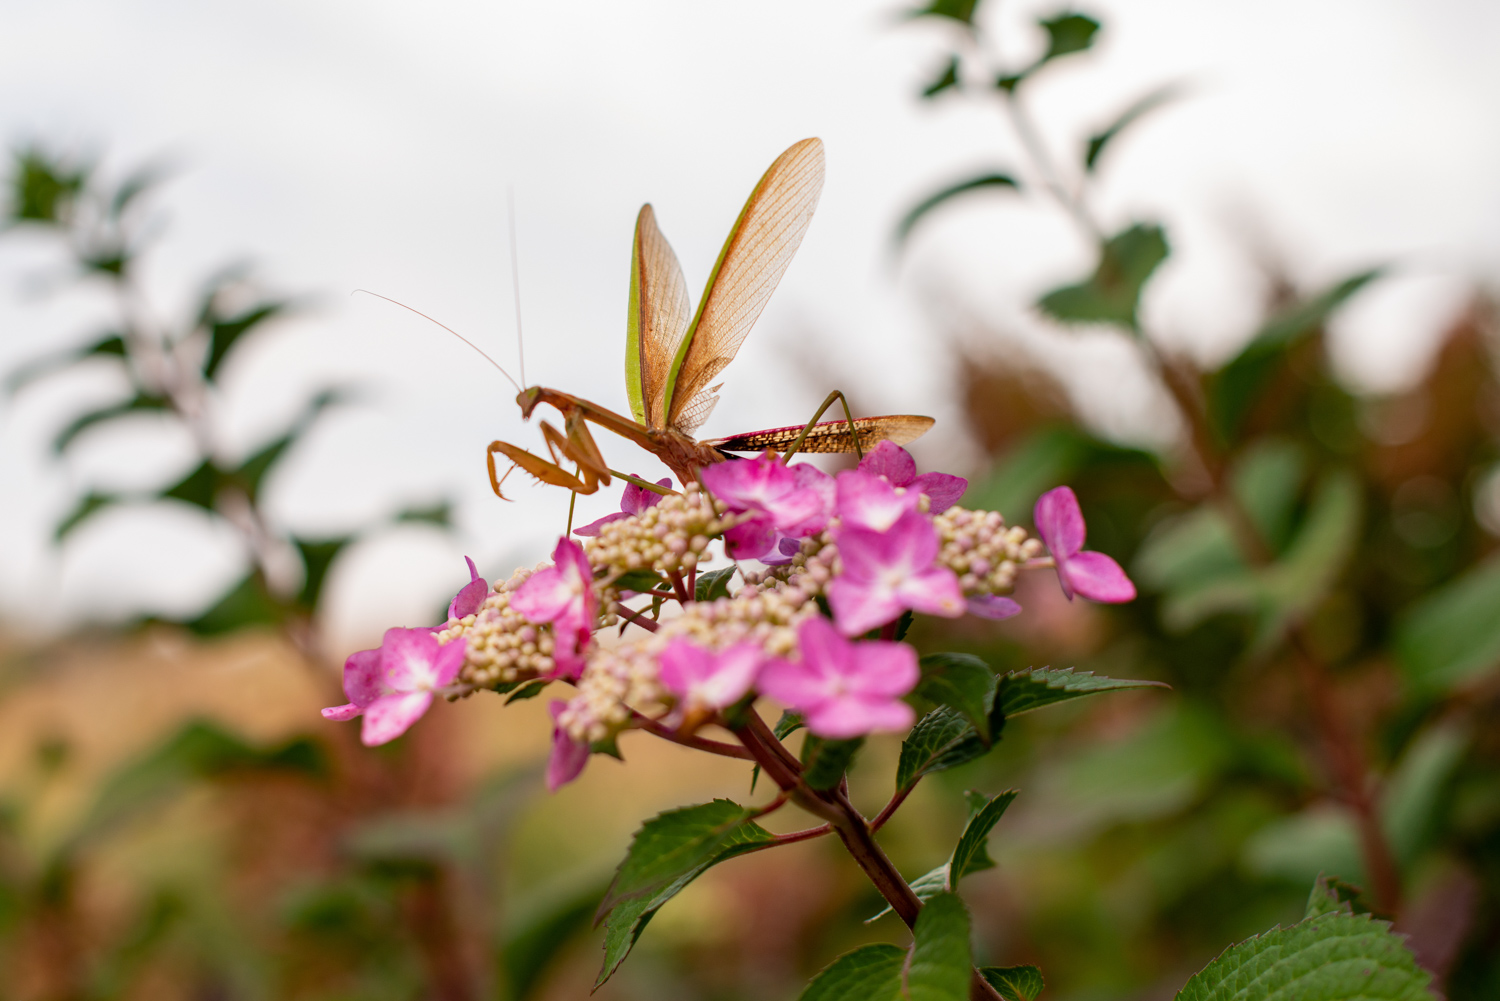 Color Photograph, Insect, Flower, Hydrangea, Praying Mantis, Midwest, Interior Design, Wall Art